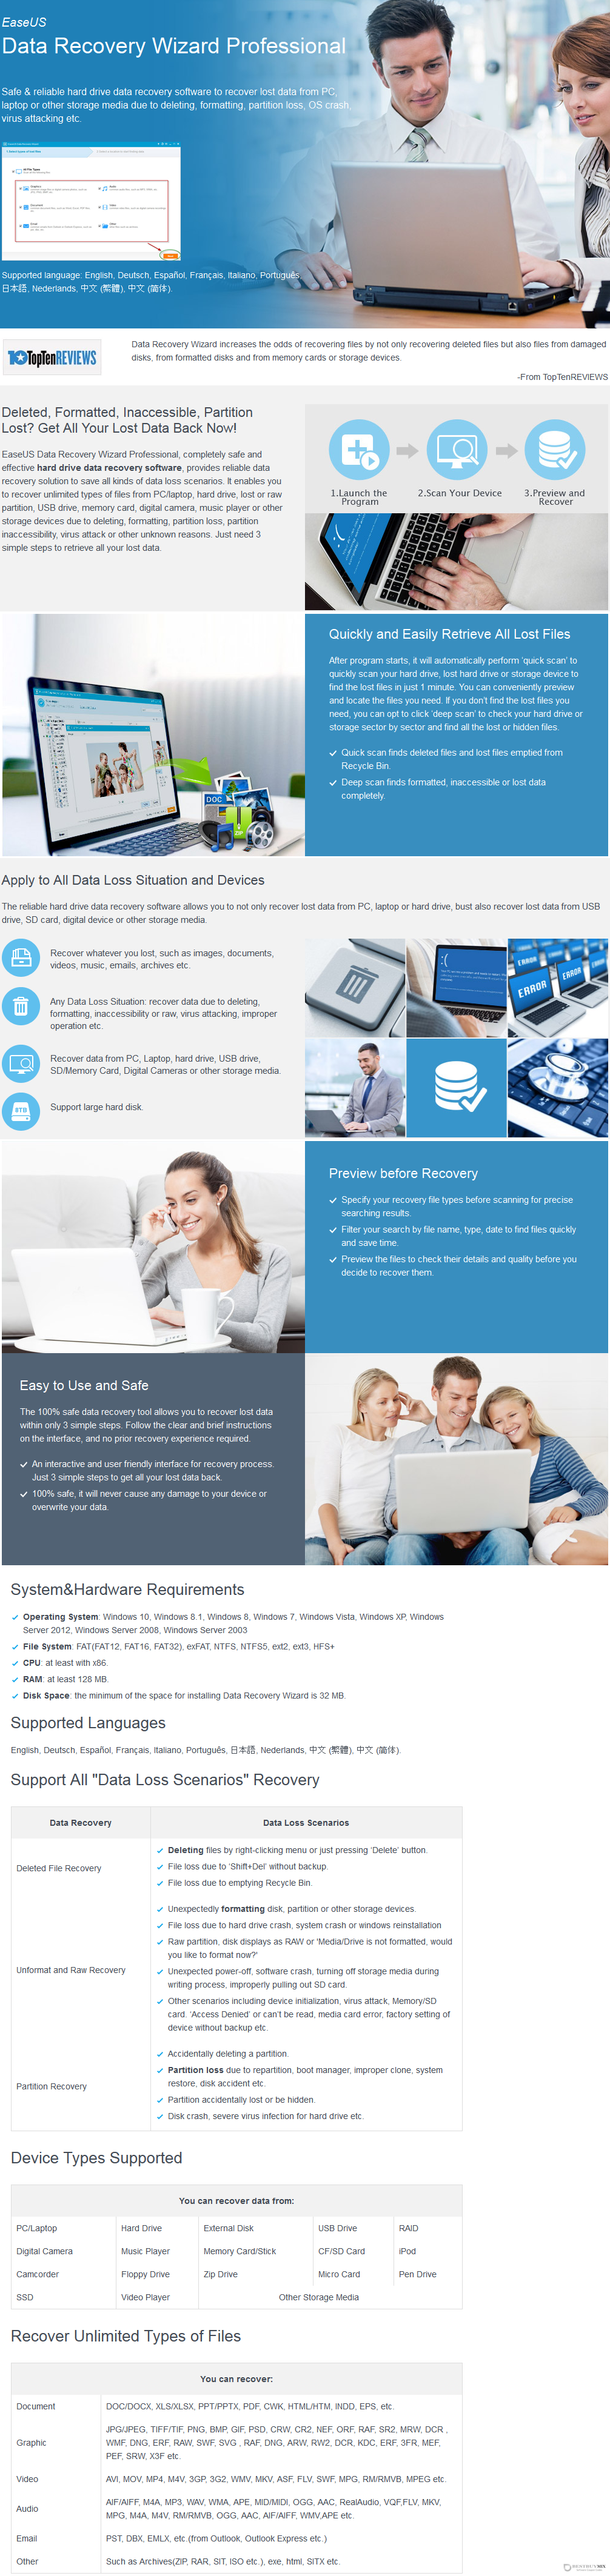 EaseUS Data Recovery Wizard Professional Discount Coupon Code